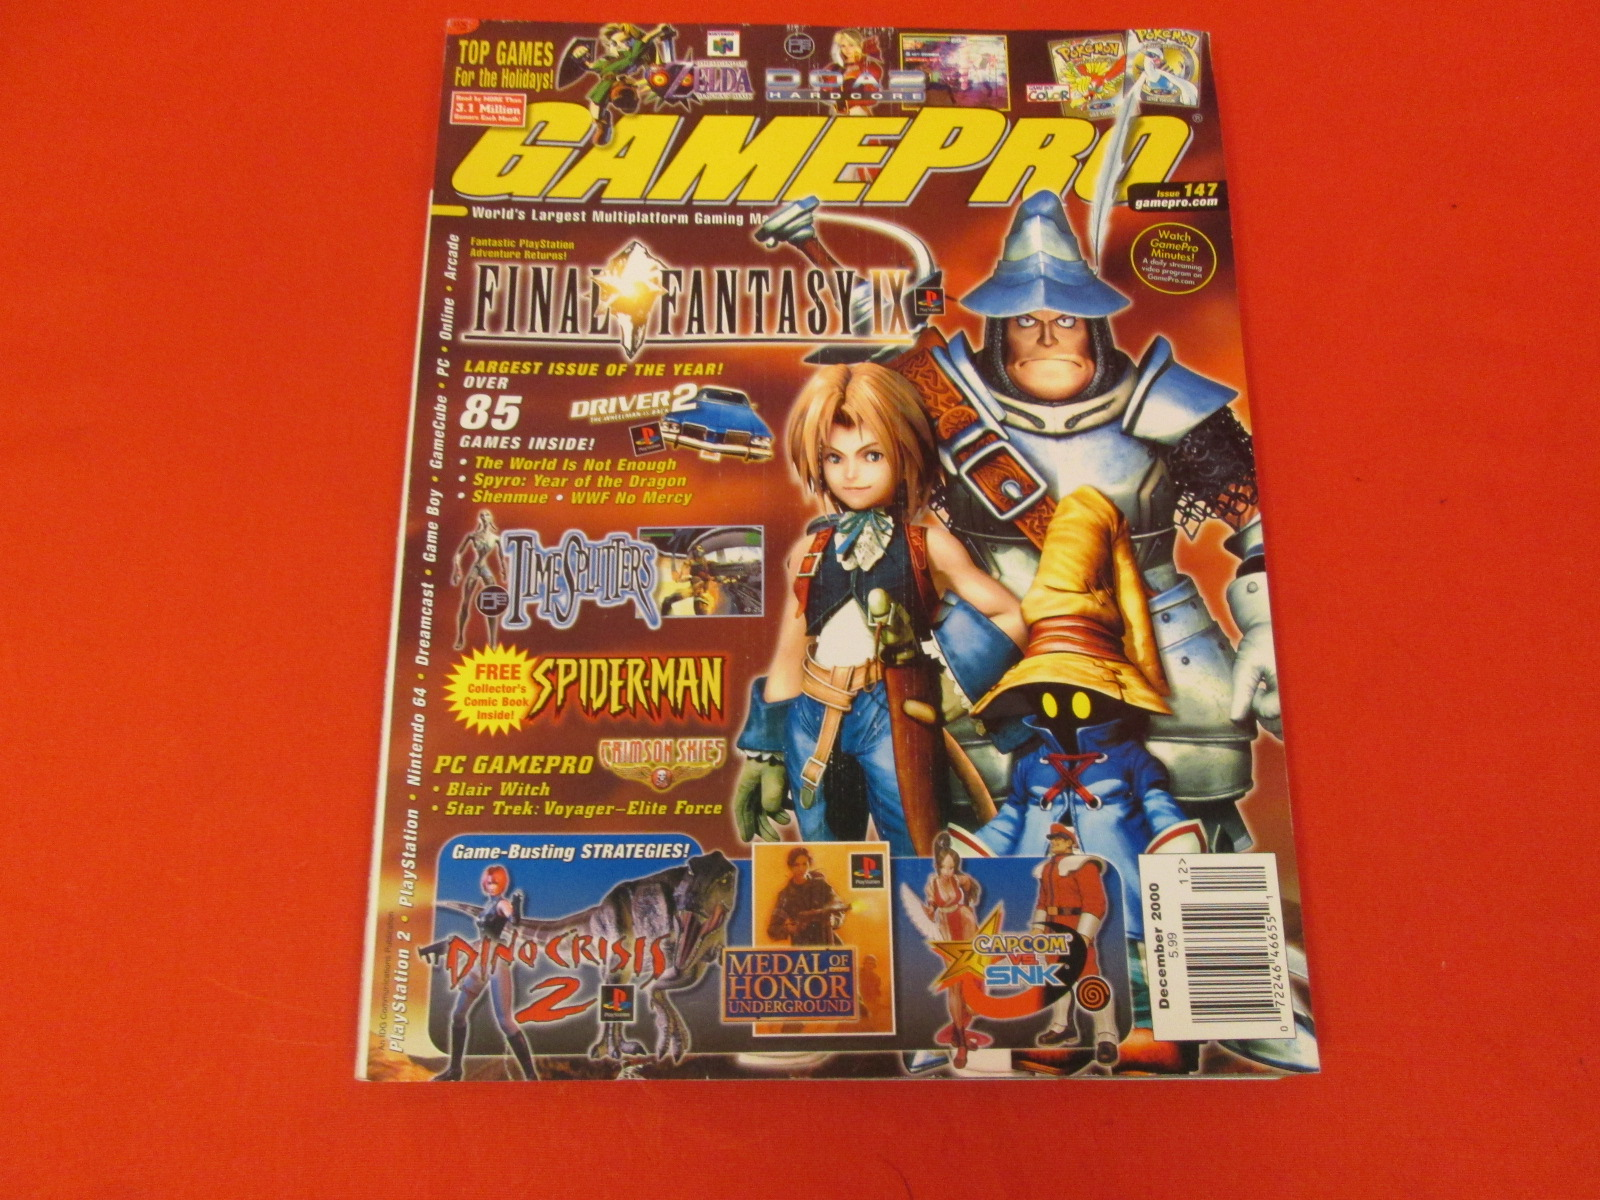 Gamepro Magazine #147 December 2000 Strategy Guide